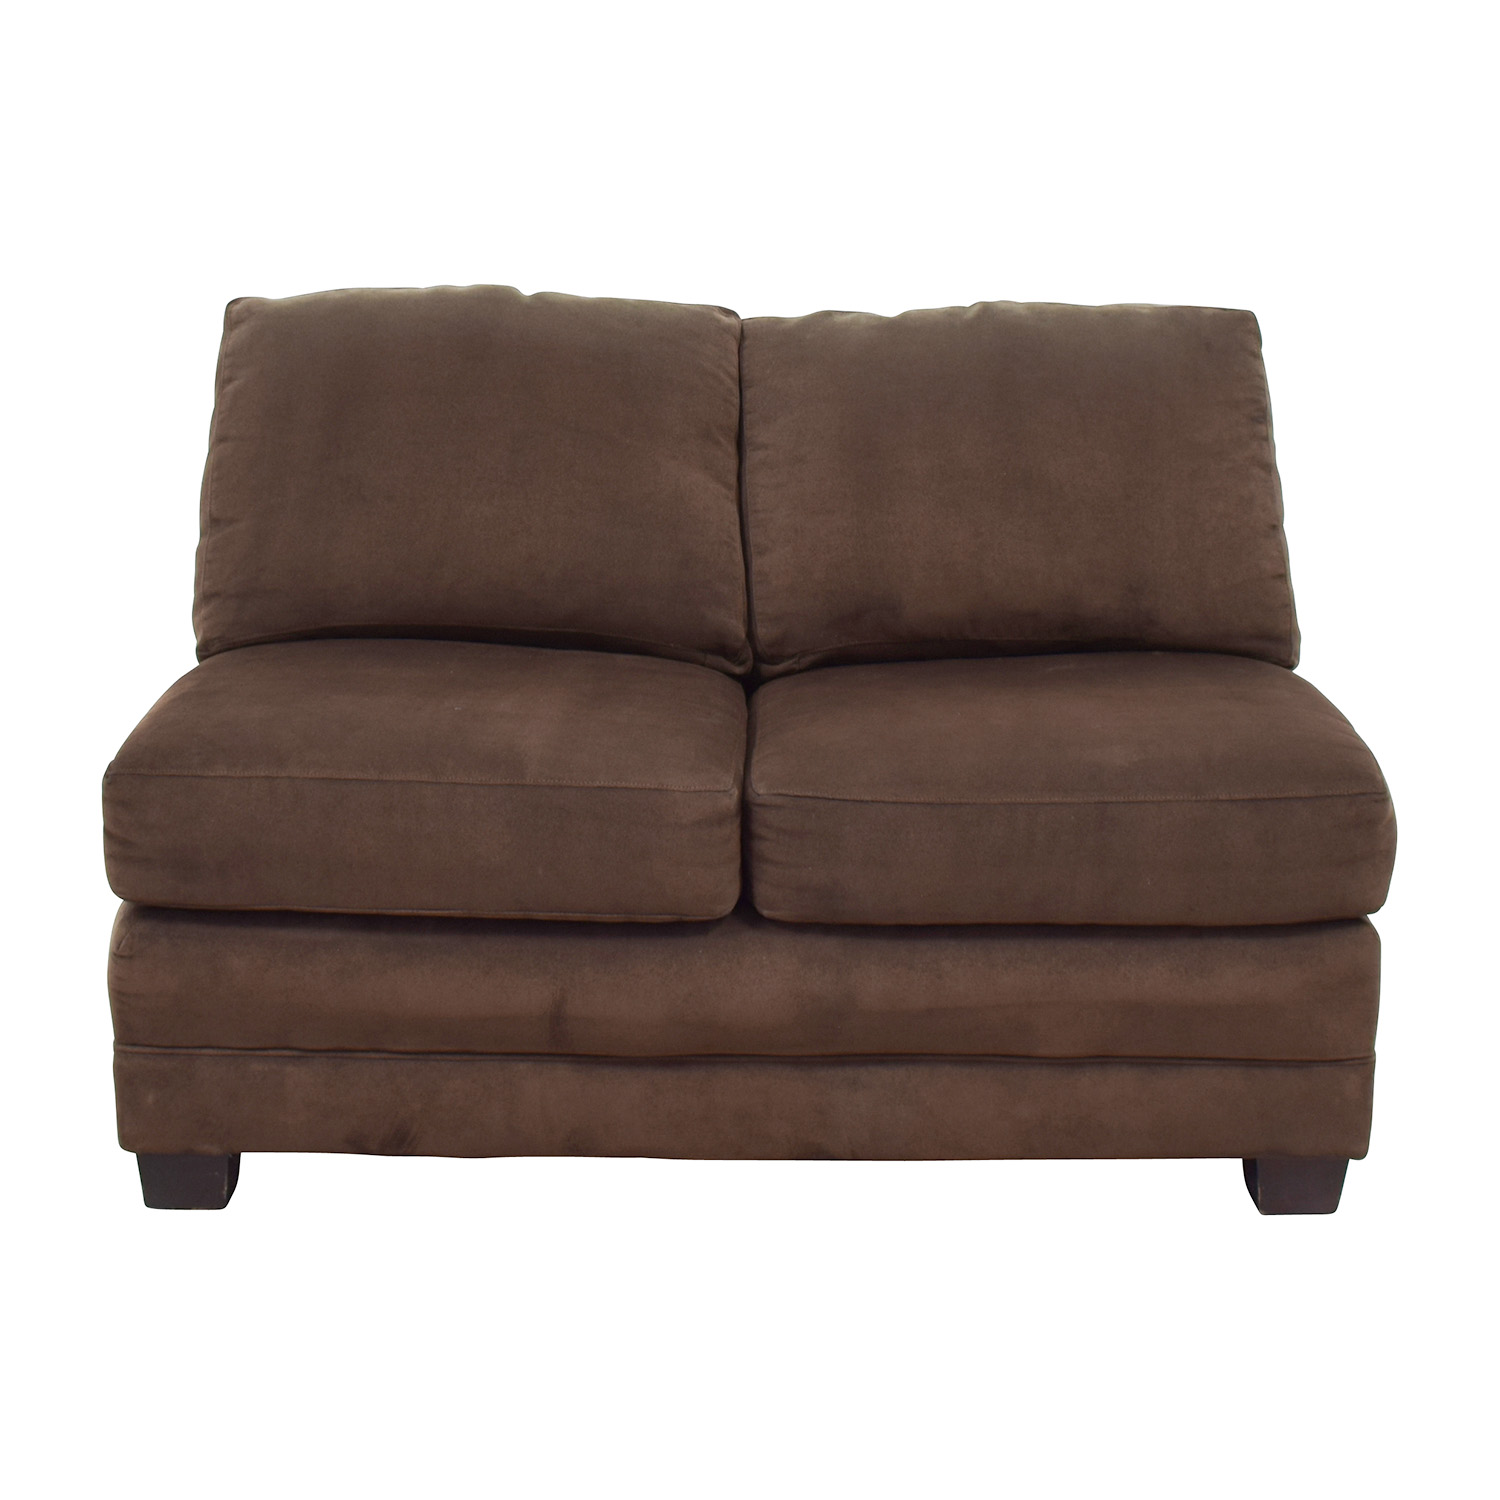 Crate and Barrel Crate and Barrel Brown Armless Loveseat Loveseats